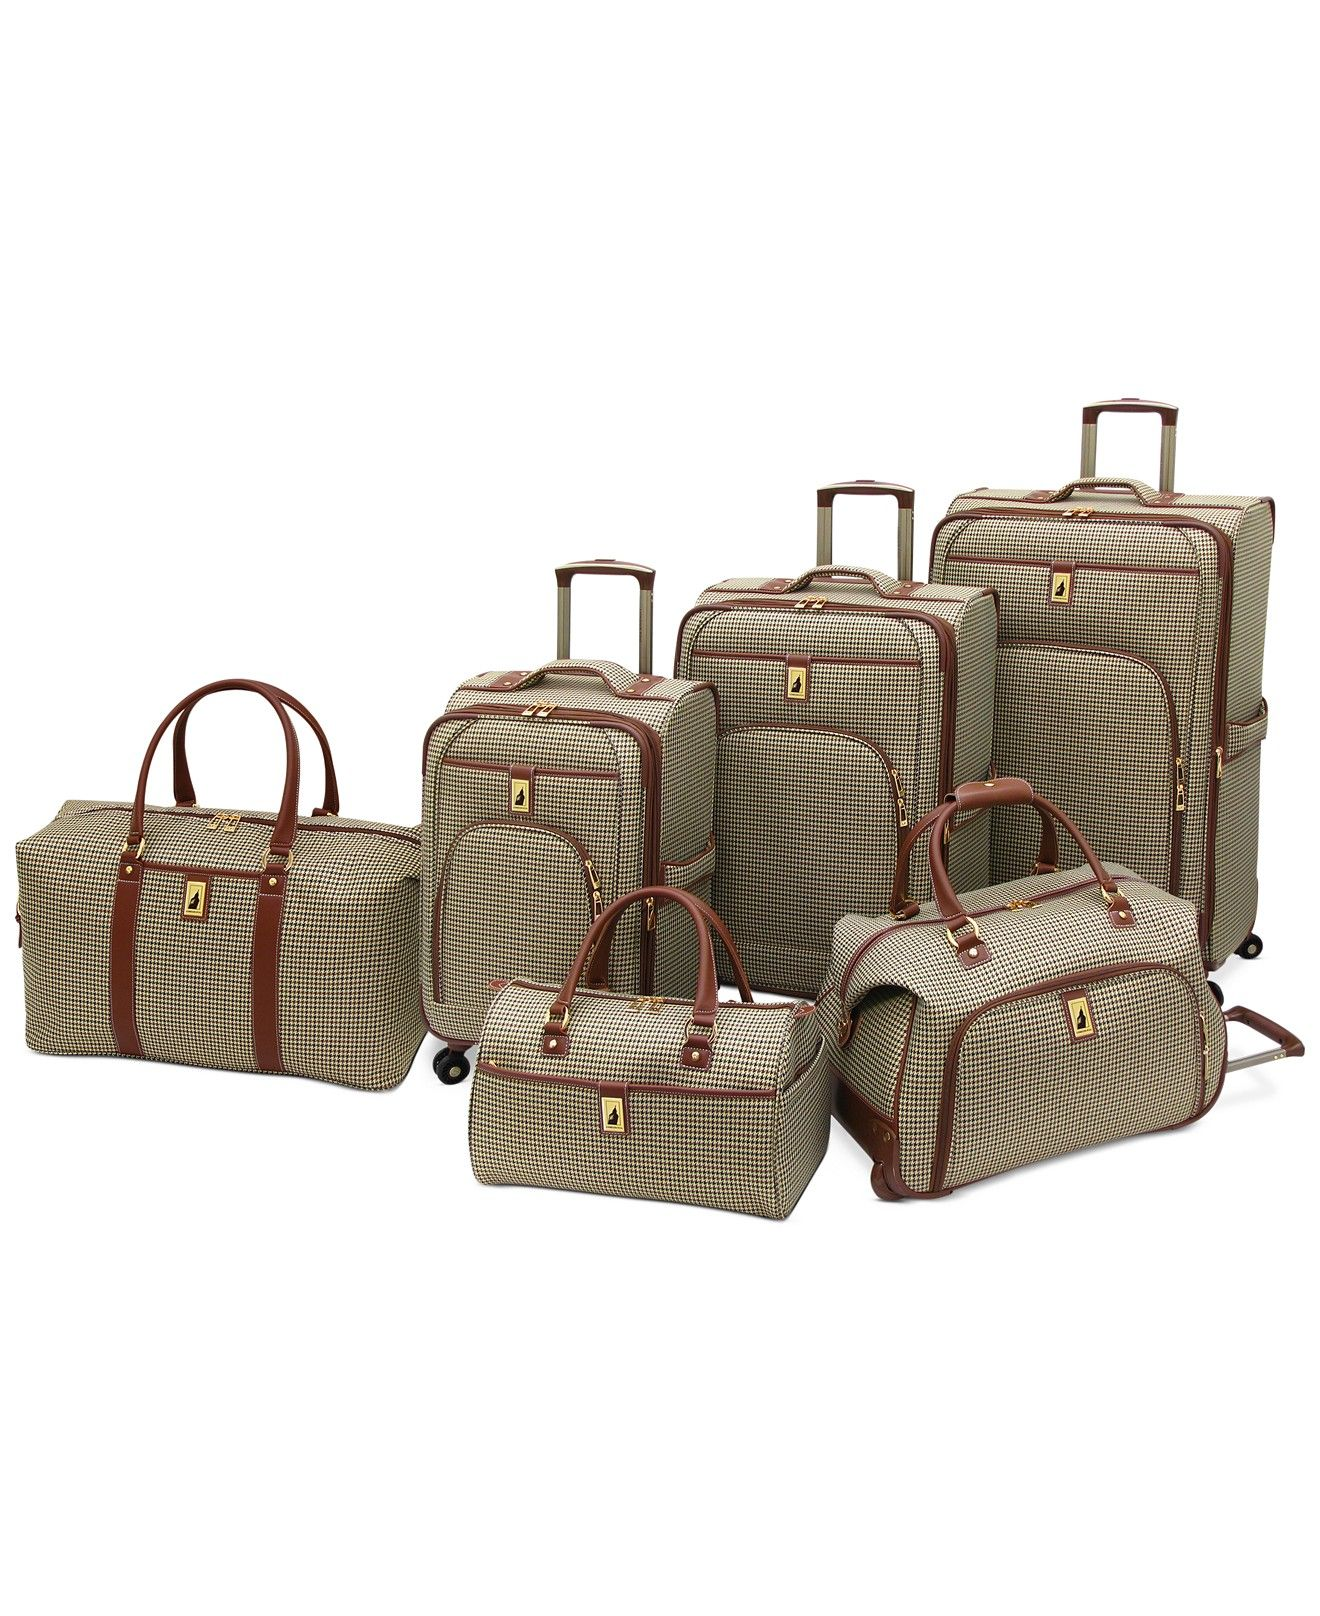 London Fog Cambridge Spinner Luggage - London Fog - luggage ...